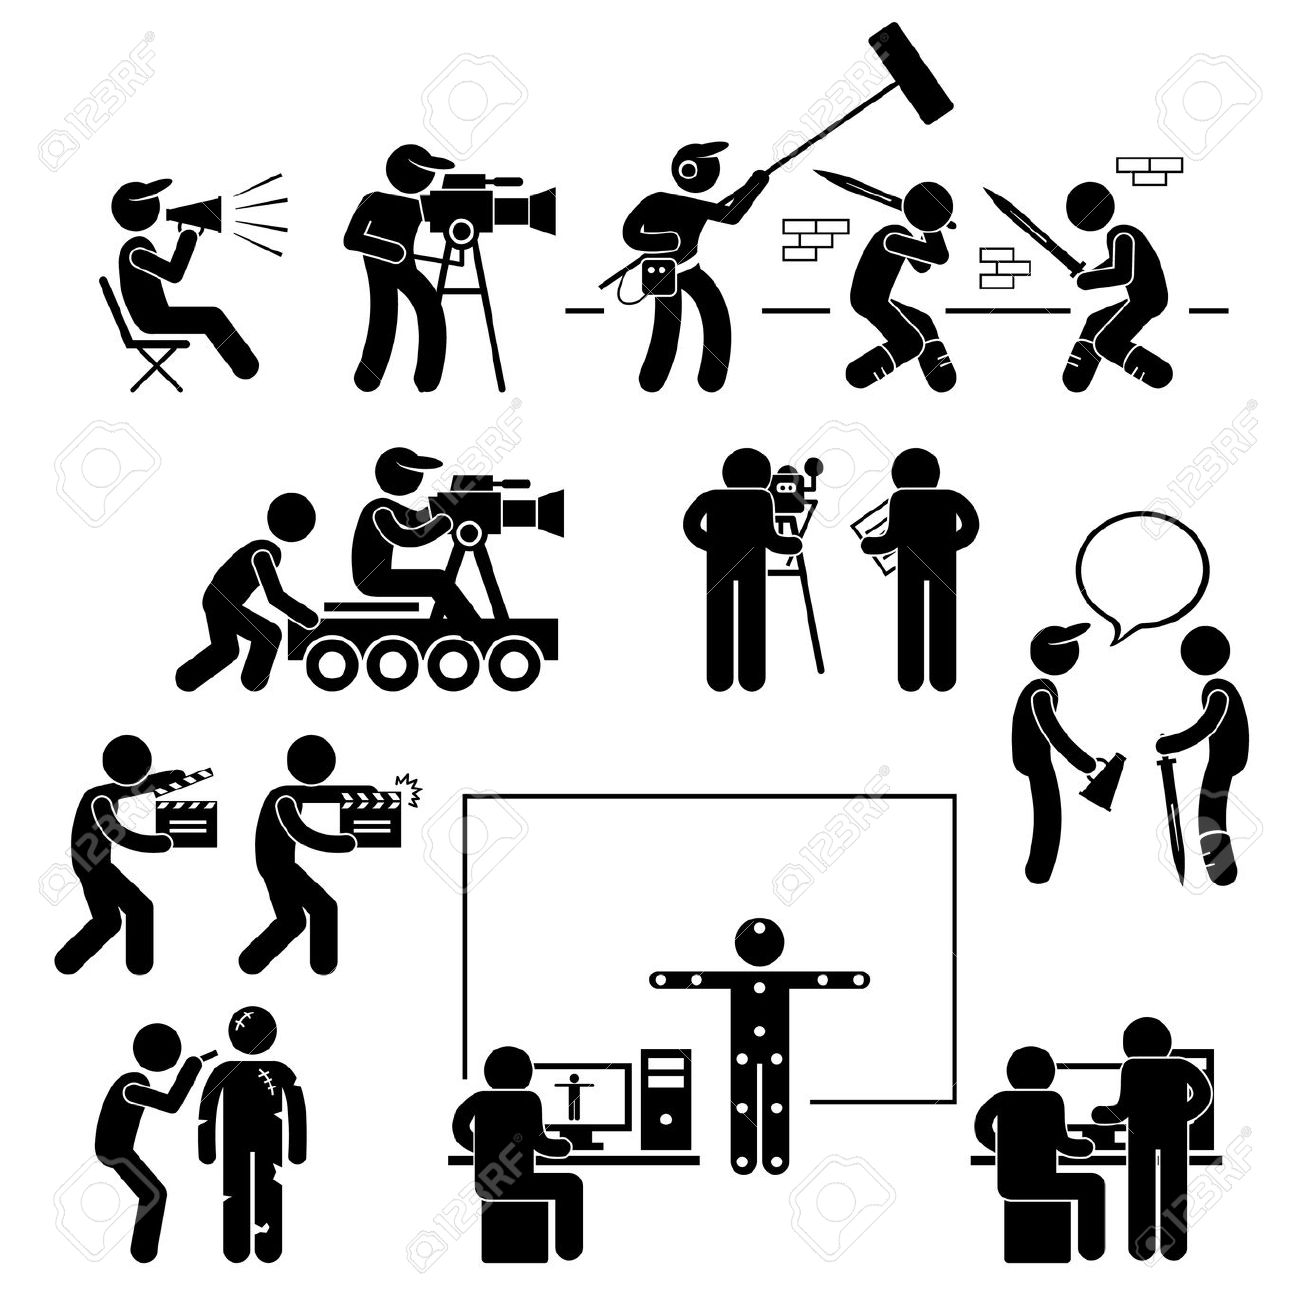 13,205 Movie Production Stock Vector Illustration And Royalty Free.